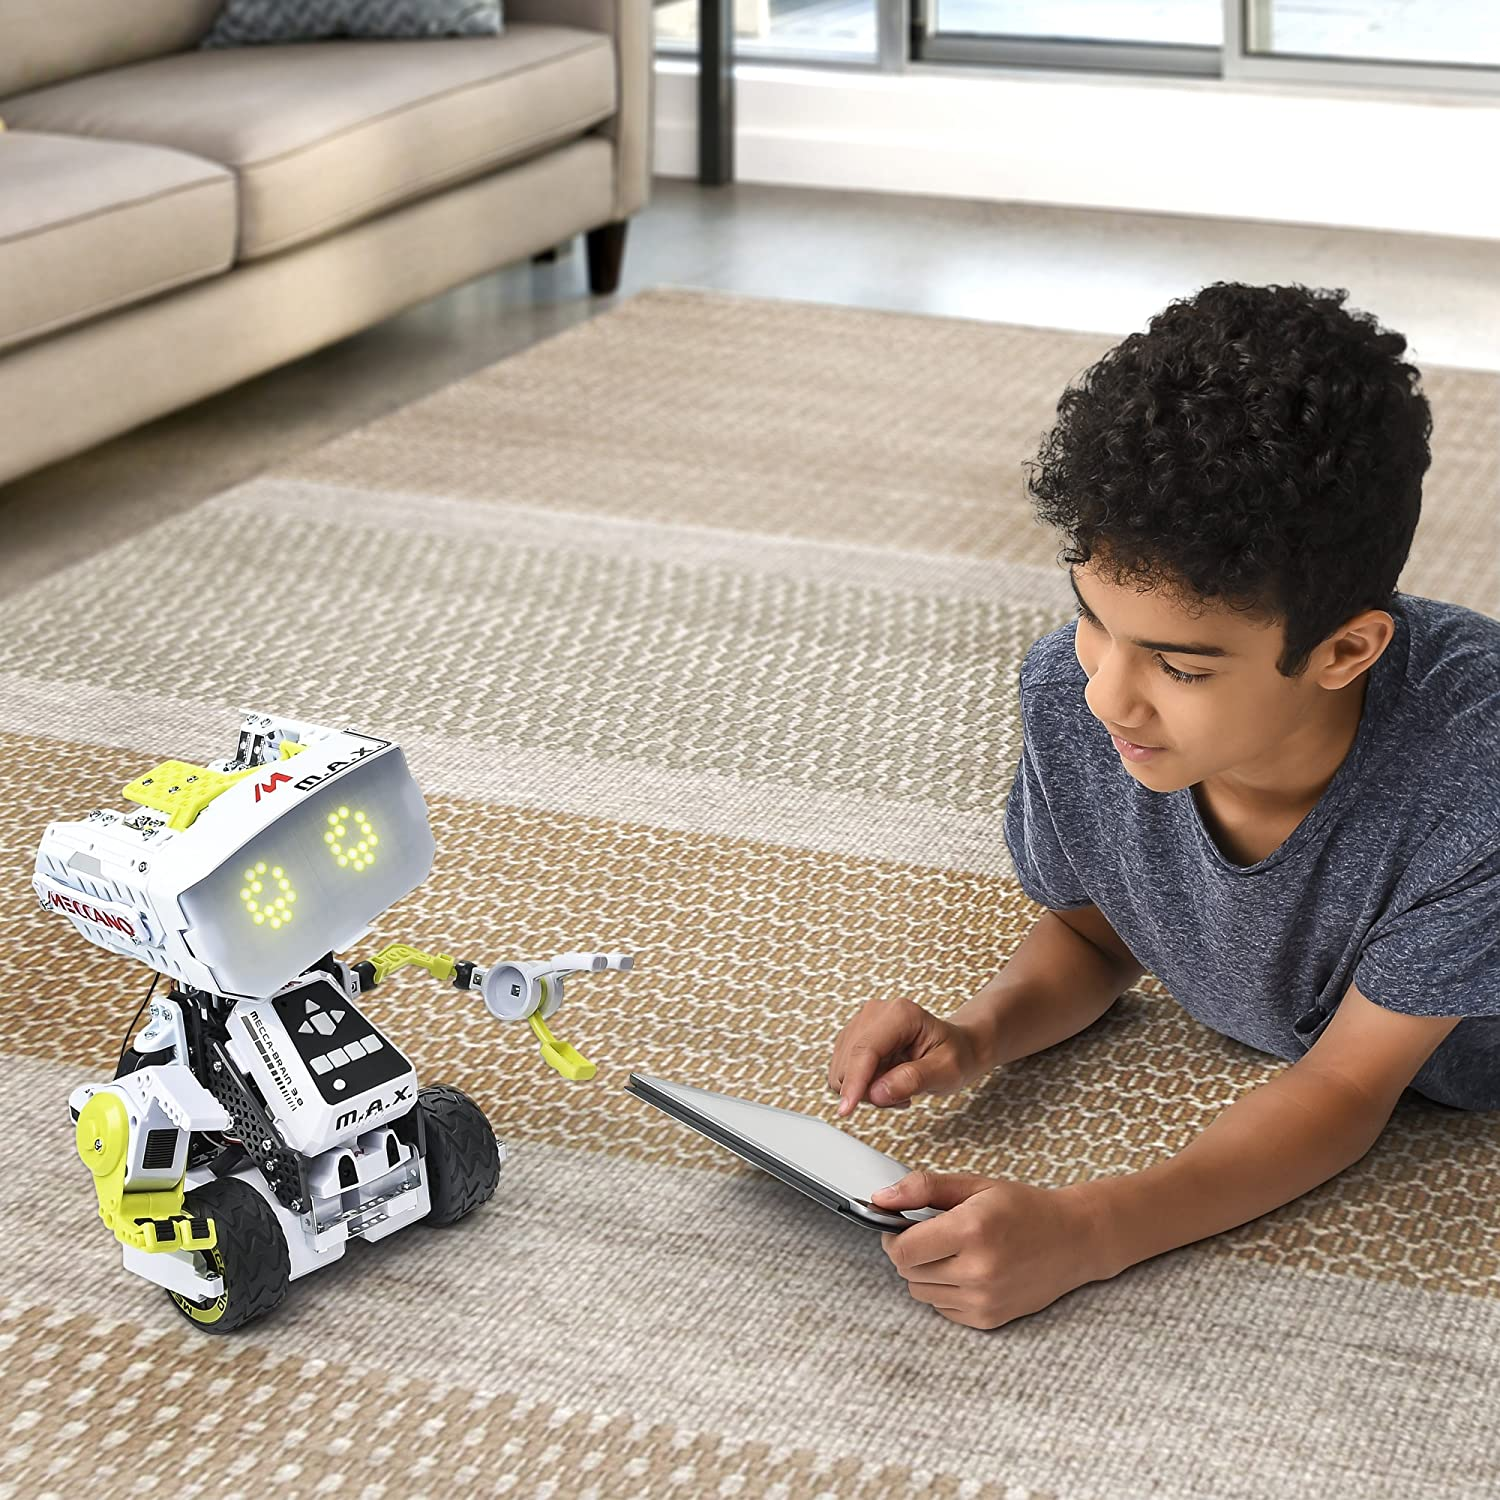 Meccano Erector Max Robotic Interactive Toy With Artificial Snap Circuits Sound Light Combo By Elenco On Barstons Childs Play Intelligence Building Sets Amazon Canada